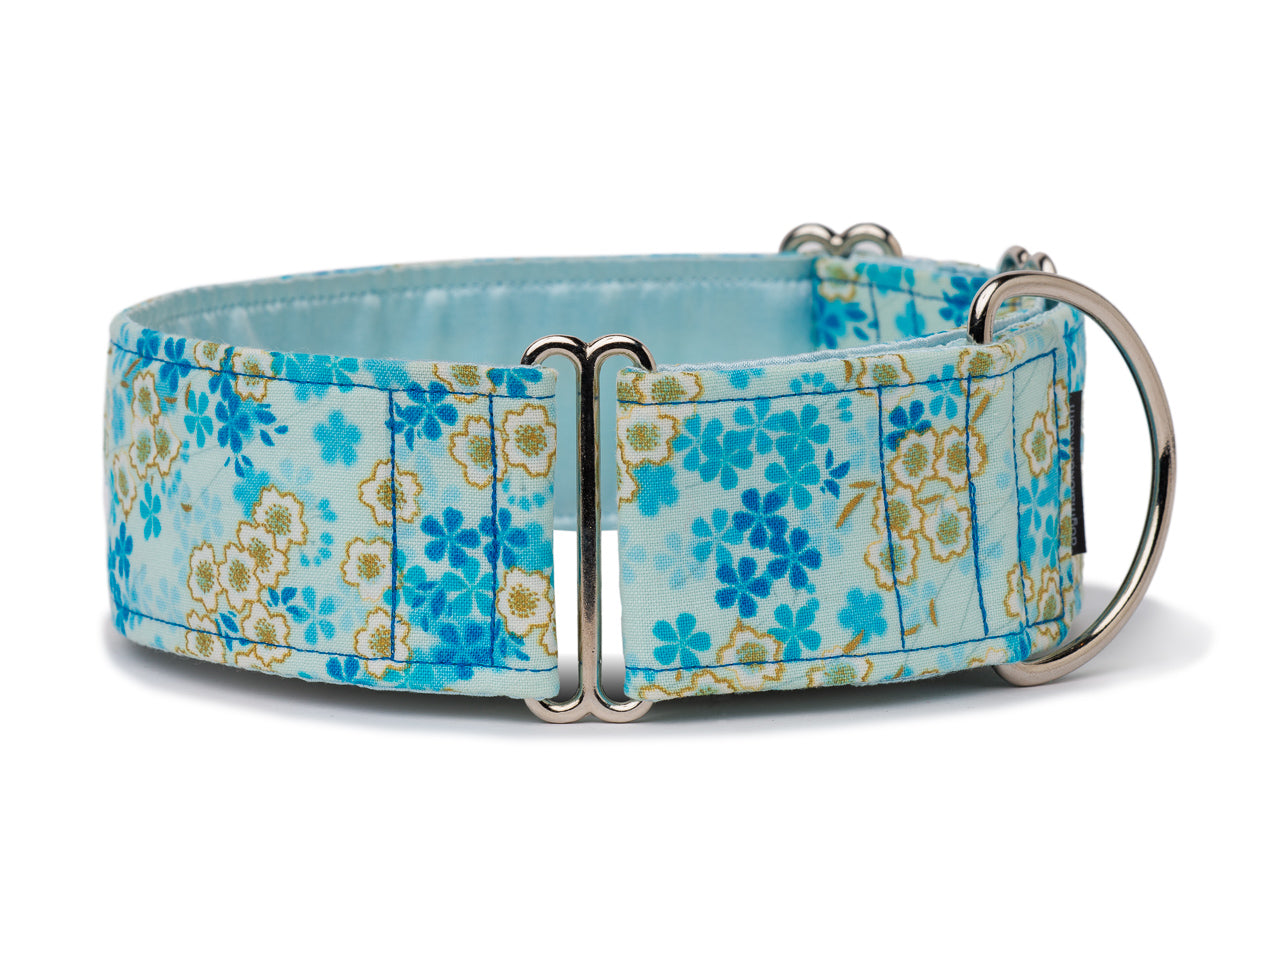 Delicate cherry blossoms in white and blue give any pooch a pretty Asian flair!